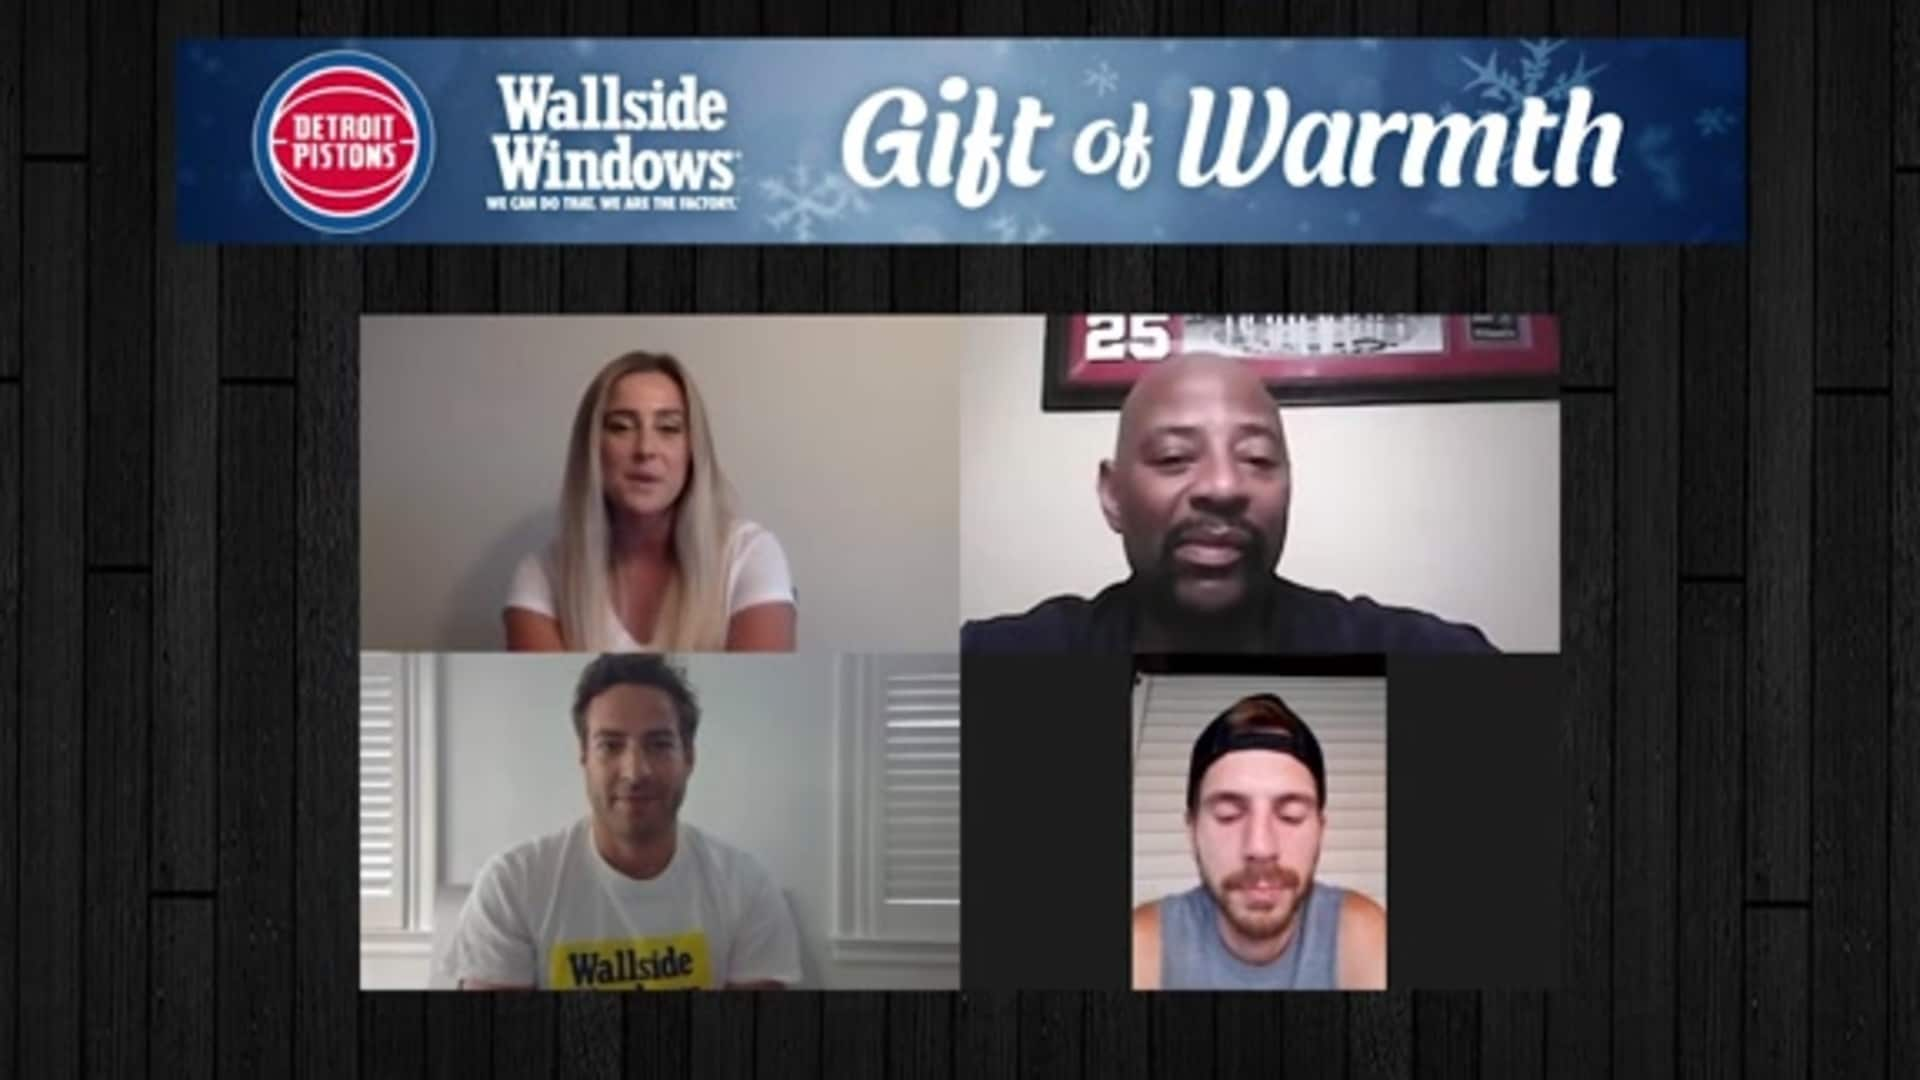 Pistons and Wallside Windows Team Up for Gift of Warmth